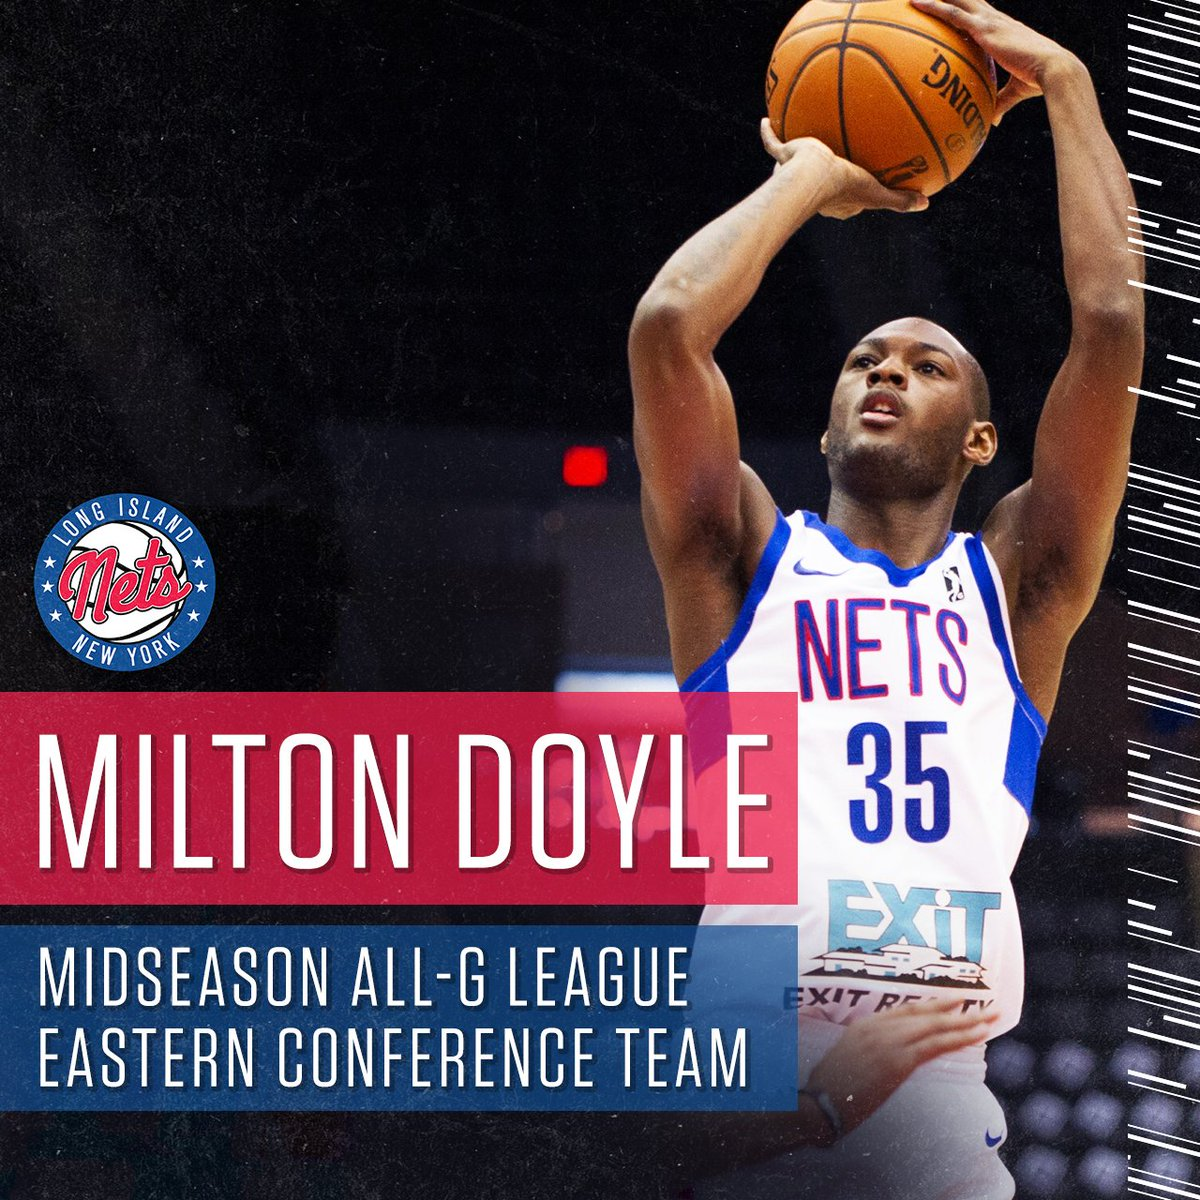 Congrats to @MDLU35 on being named to the Midseason #AllGLeague East Team 💪  ➡️ http://on.nba.com/2DX9x7S